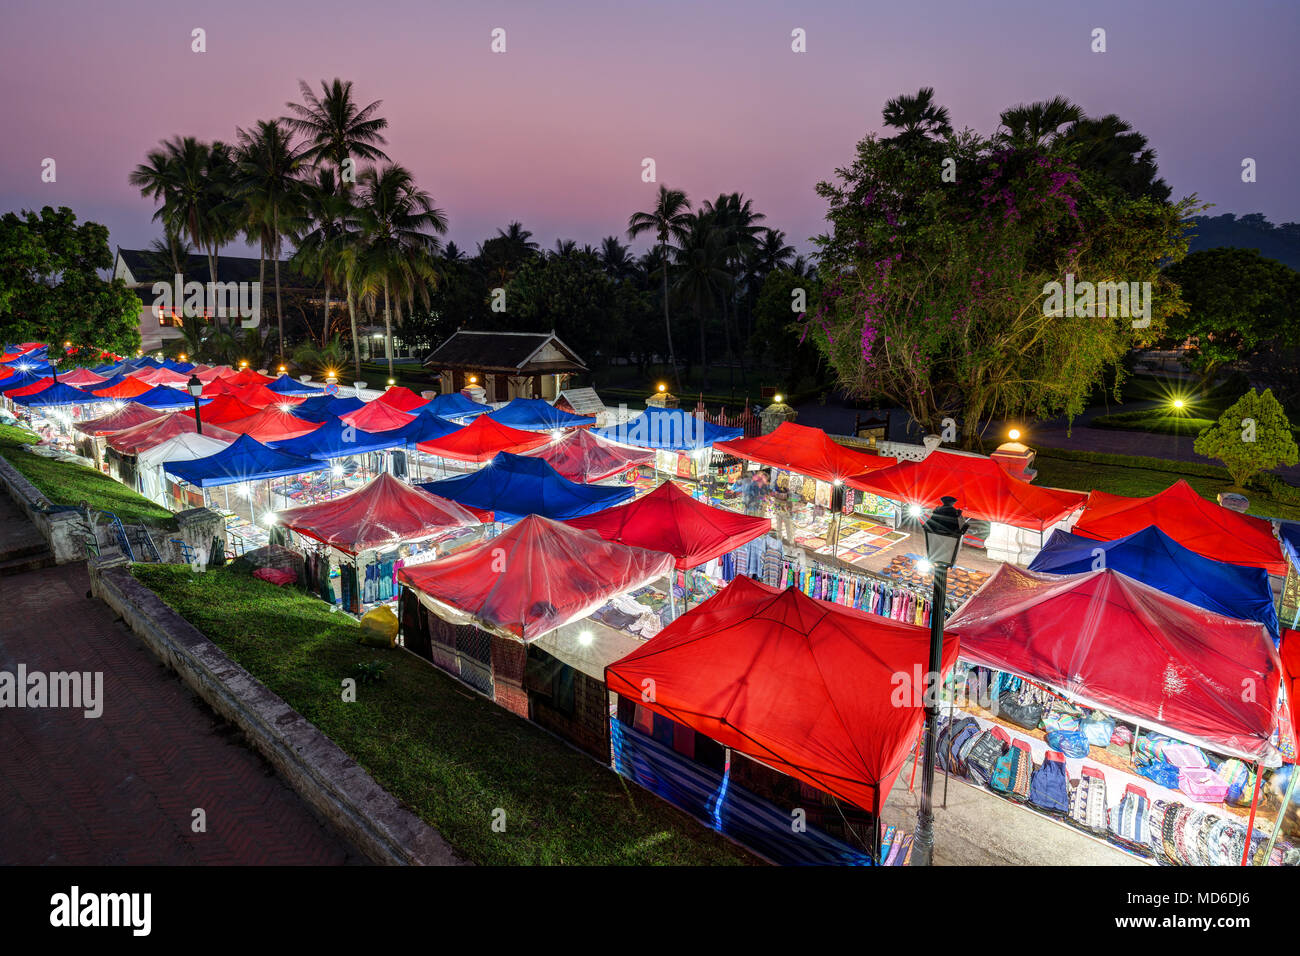 Many lit market stalls at the night market in Luang Prabang, Laos, viewed from above at dusk. - Stock Image